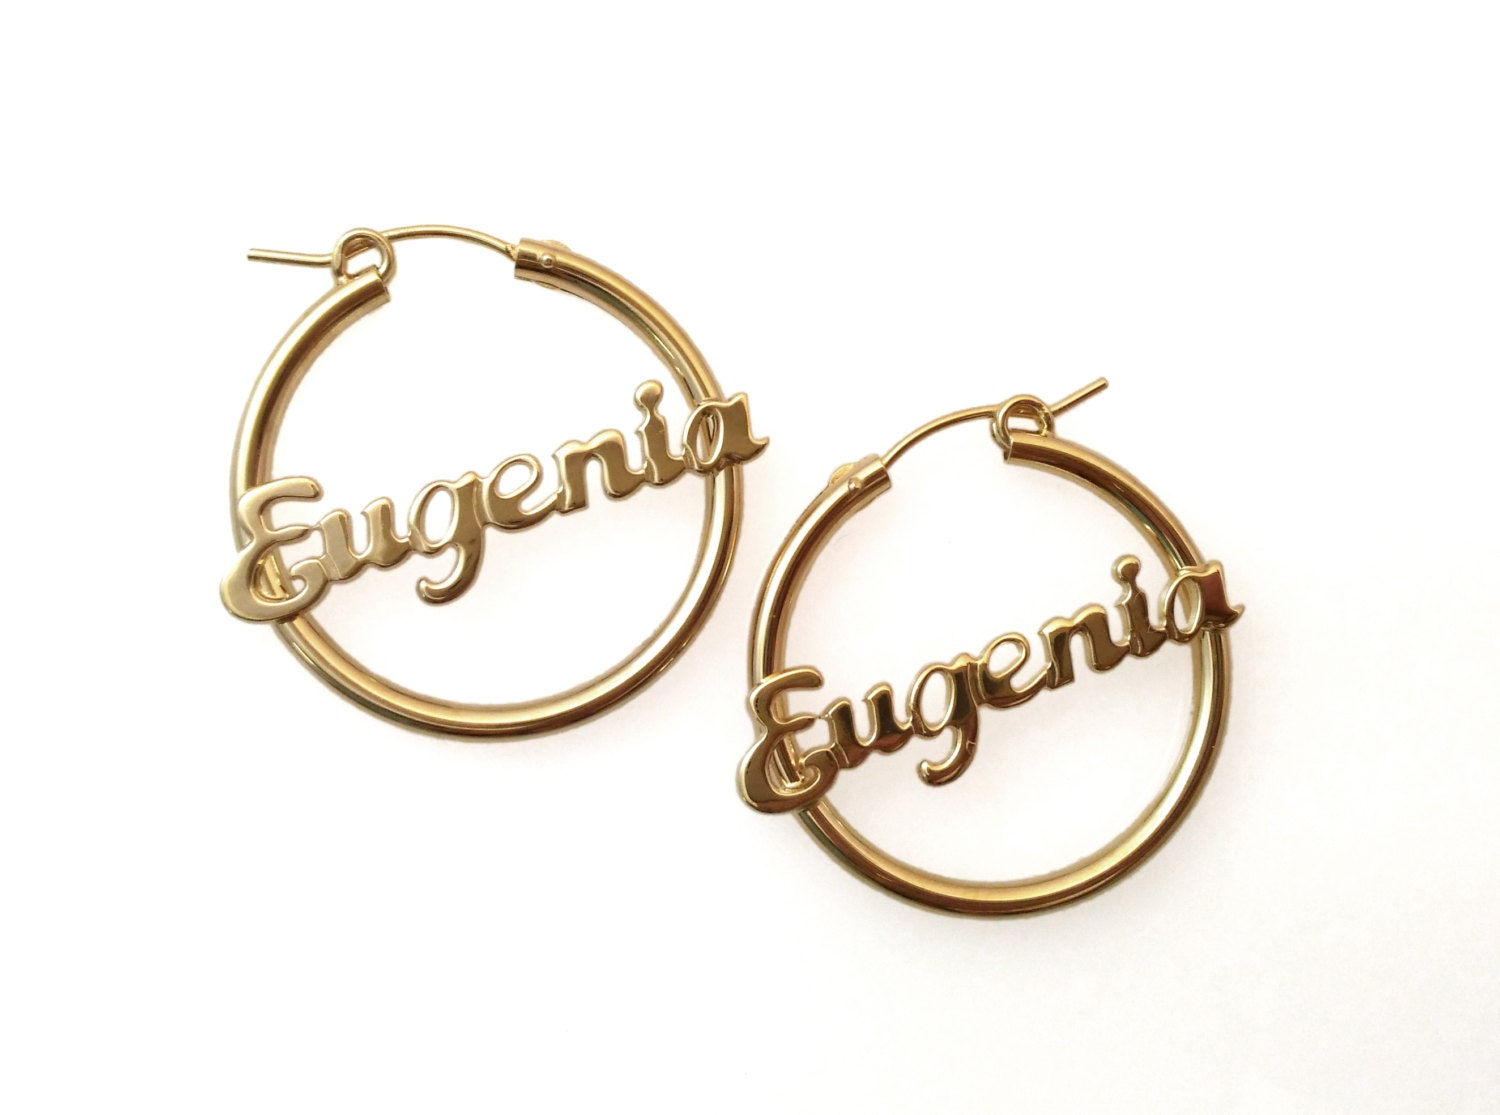 personalized name hoop earrings personalized gold earrings hoop earrings name earrings 9560